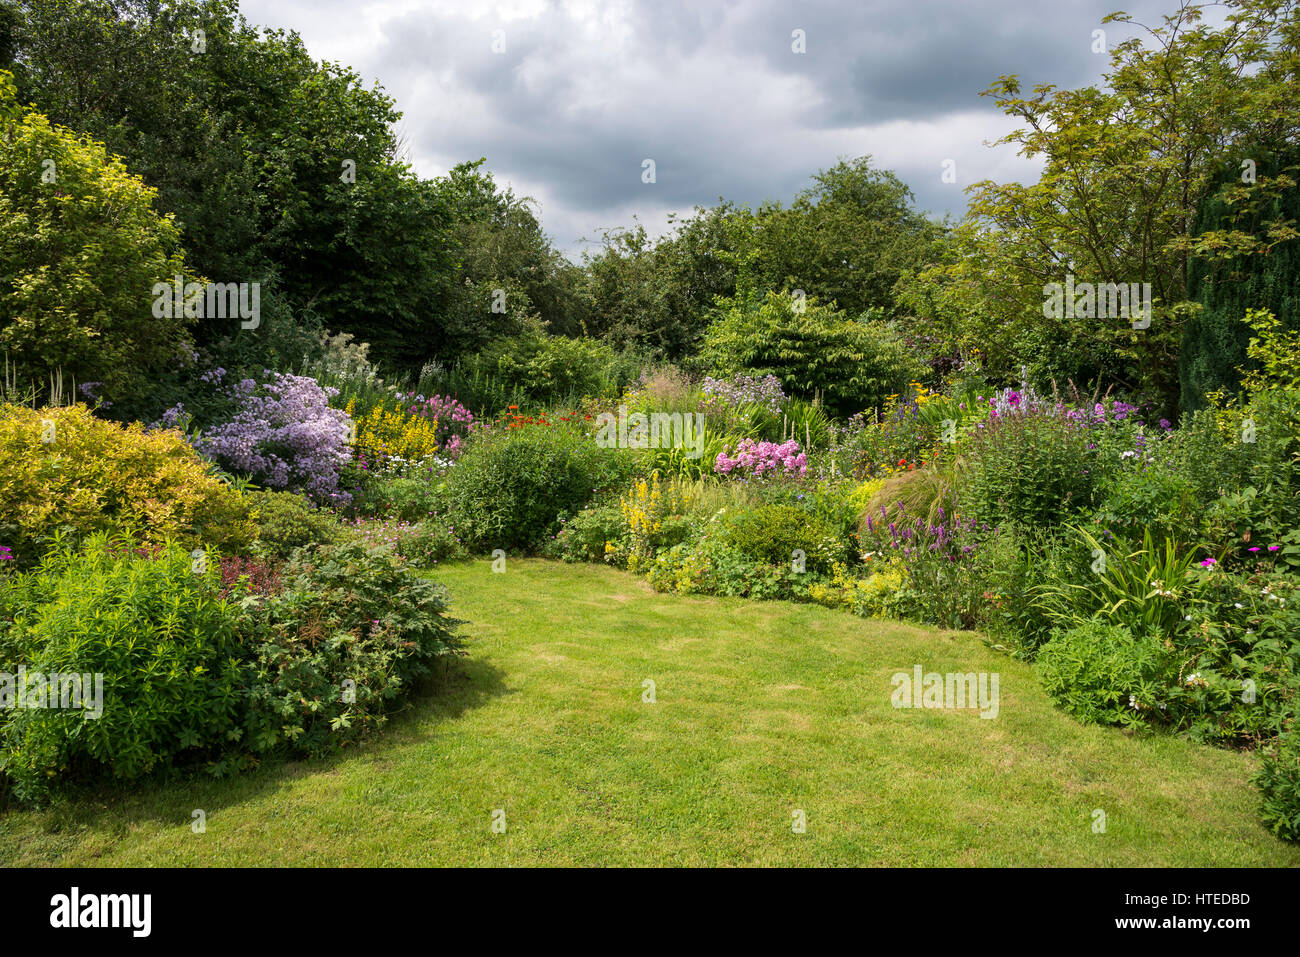 Colourful Flower Borders In A Cottage Garden Style Mixed